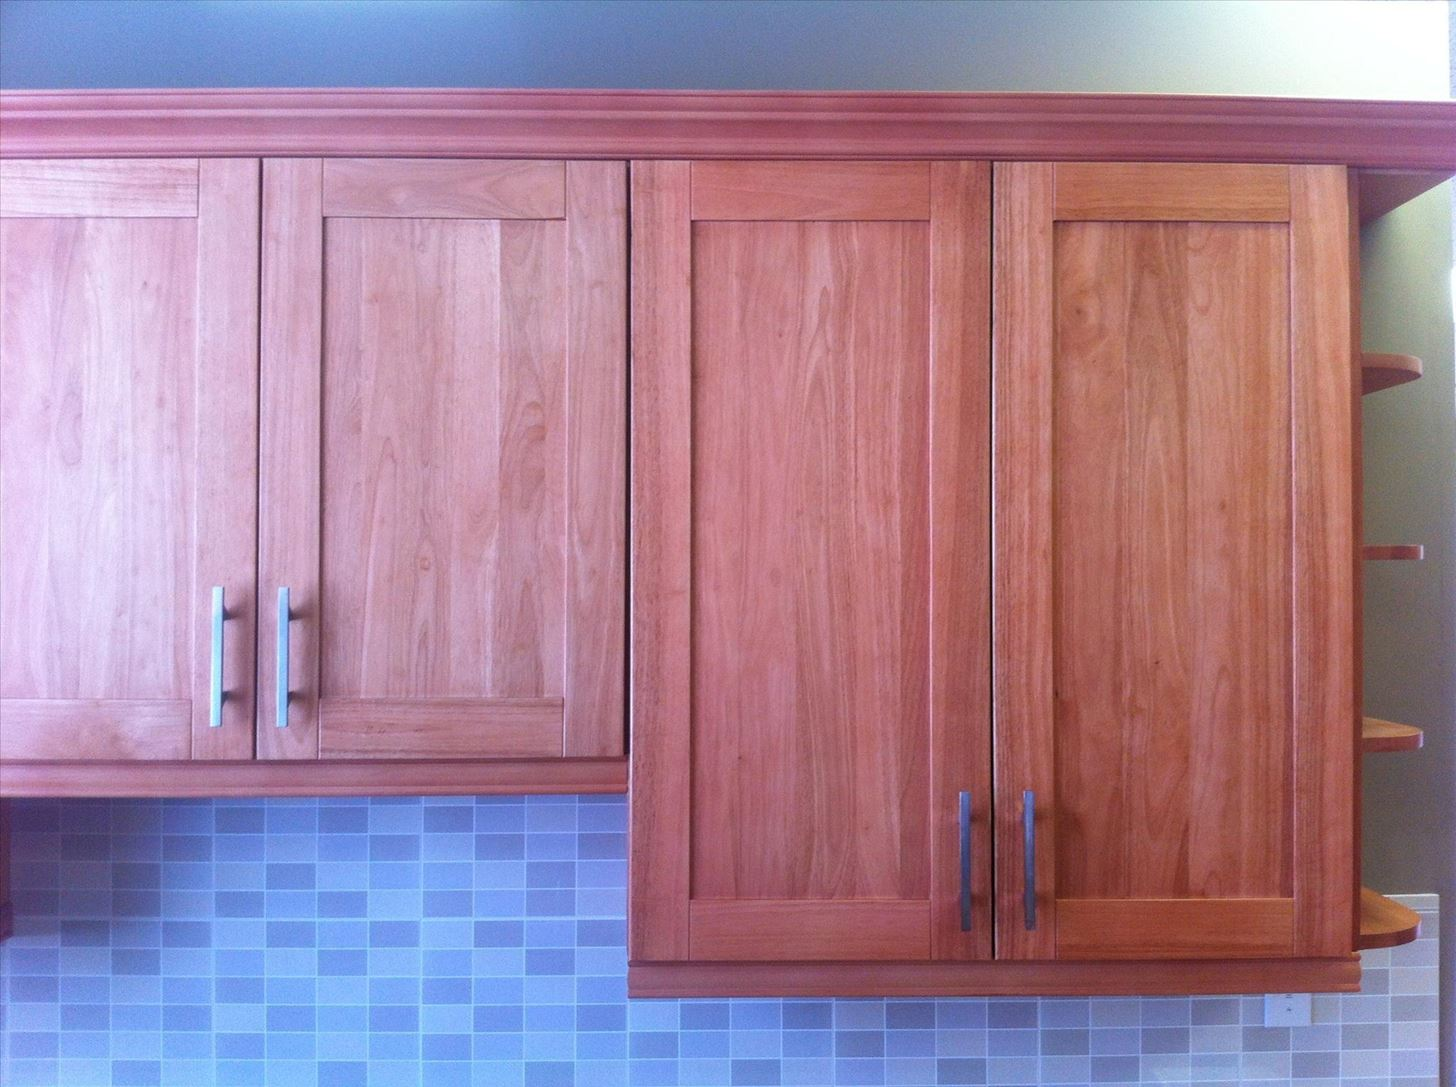 How To Adjust The Alignment Of Cabinet Doors « Construction U0026 Repair ::  WonderHowTo